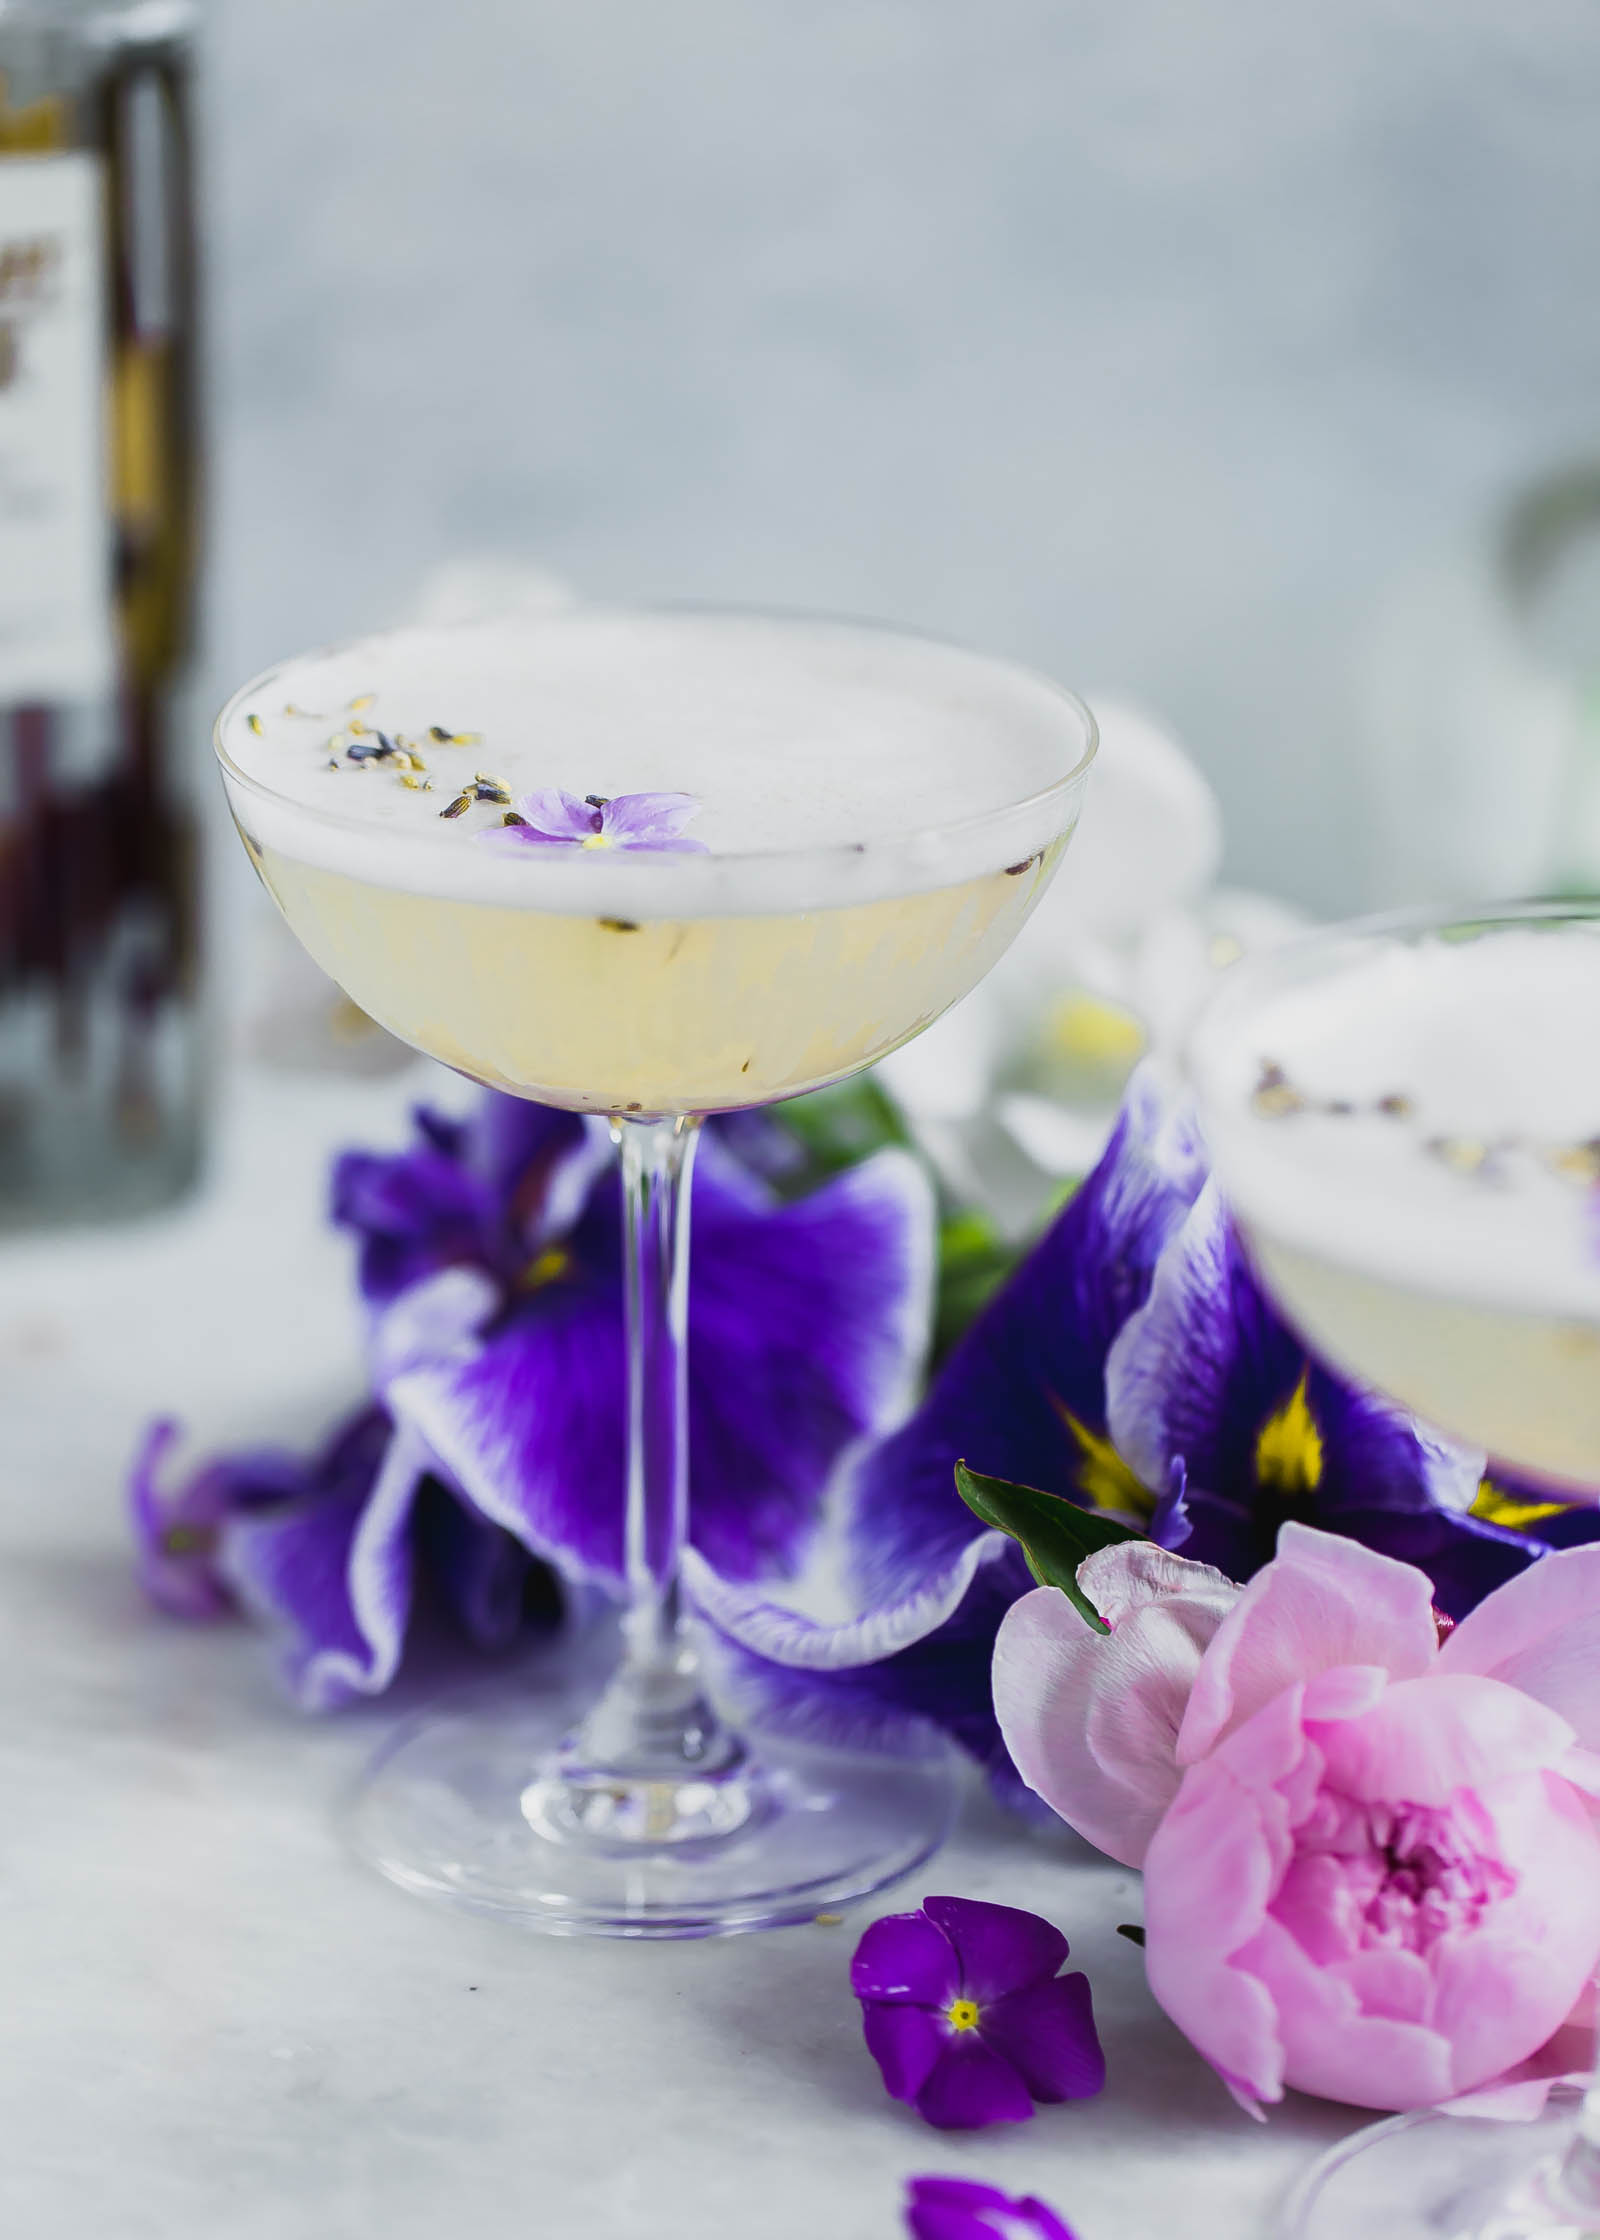 A crisp combination of lavender, coconut water, and vodka make for a seriously refreshing summer cocktail.